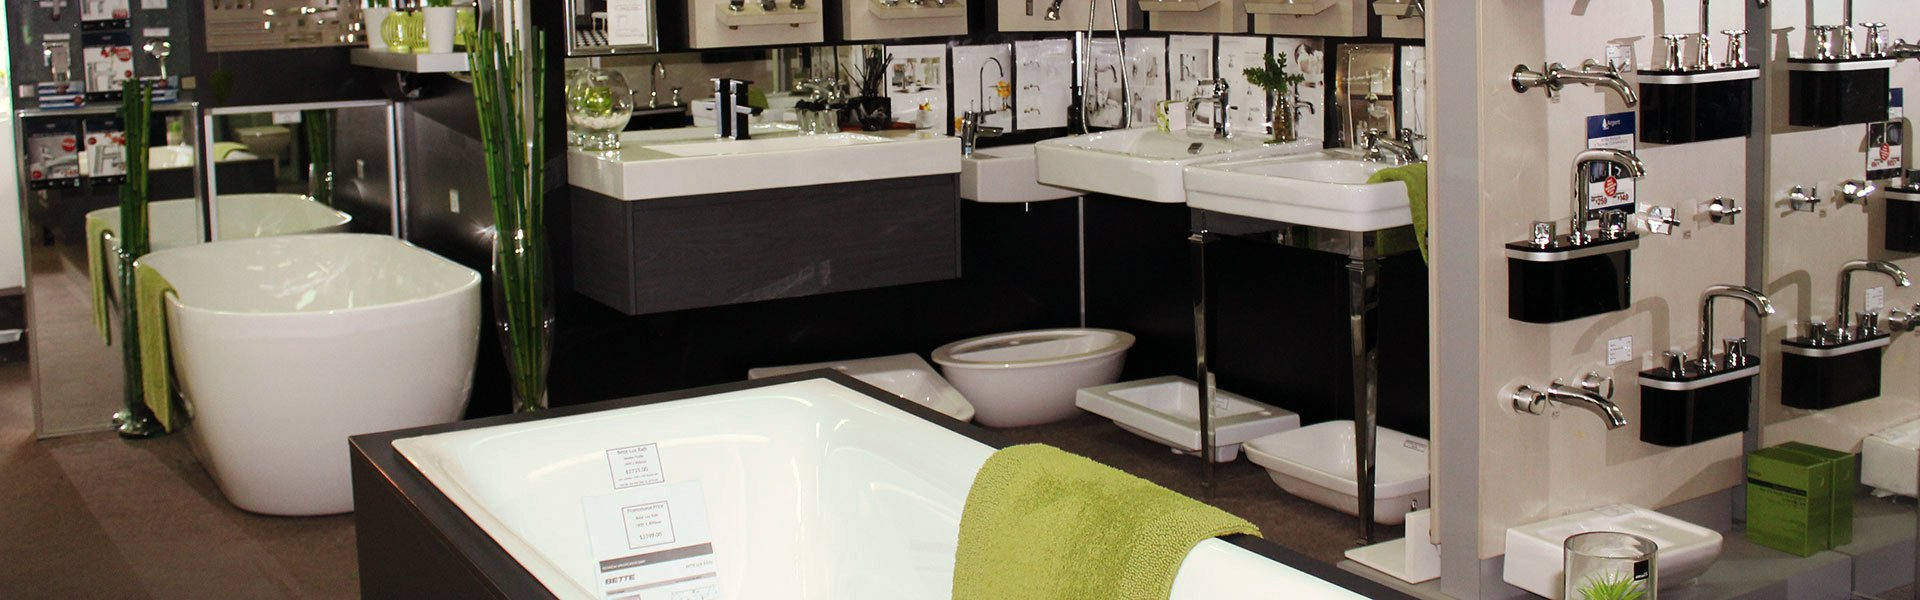 shop header image with chromatic - Bathroom Supplies in ...